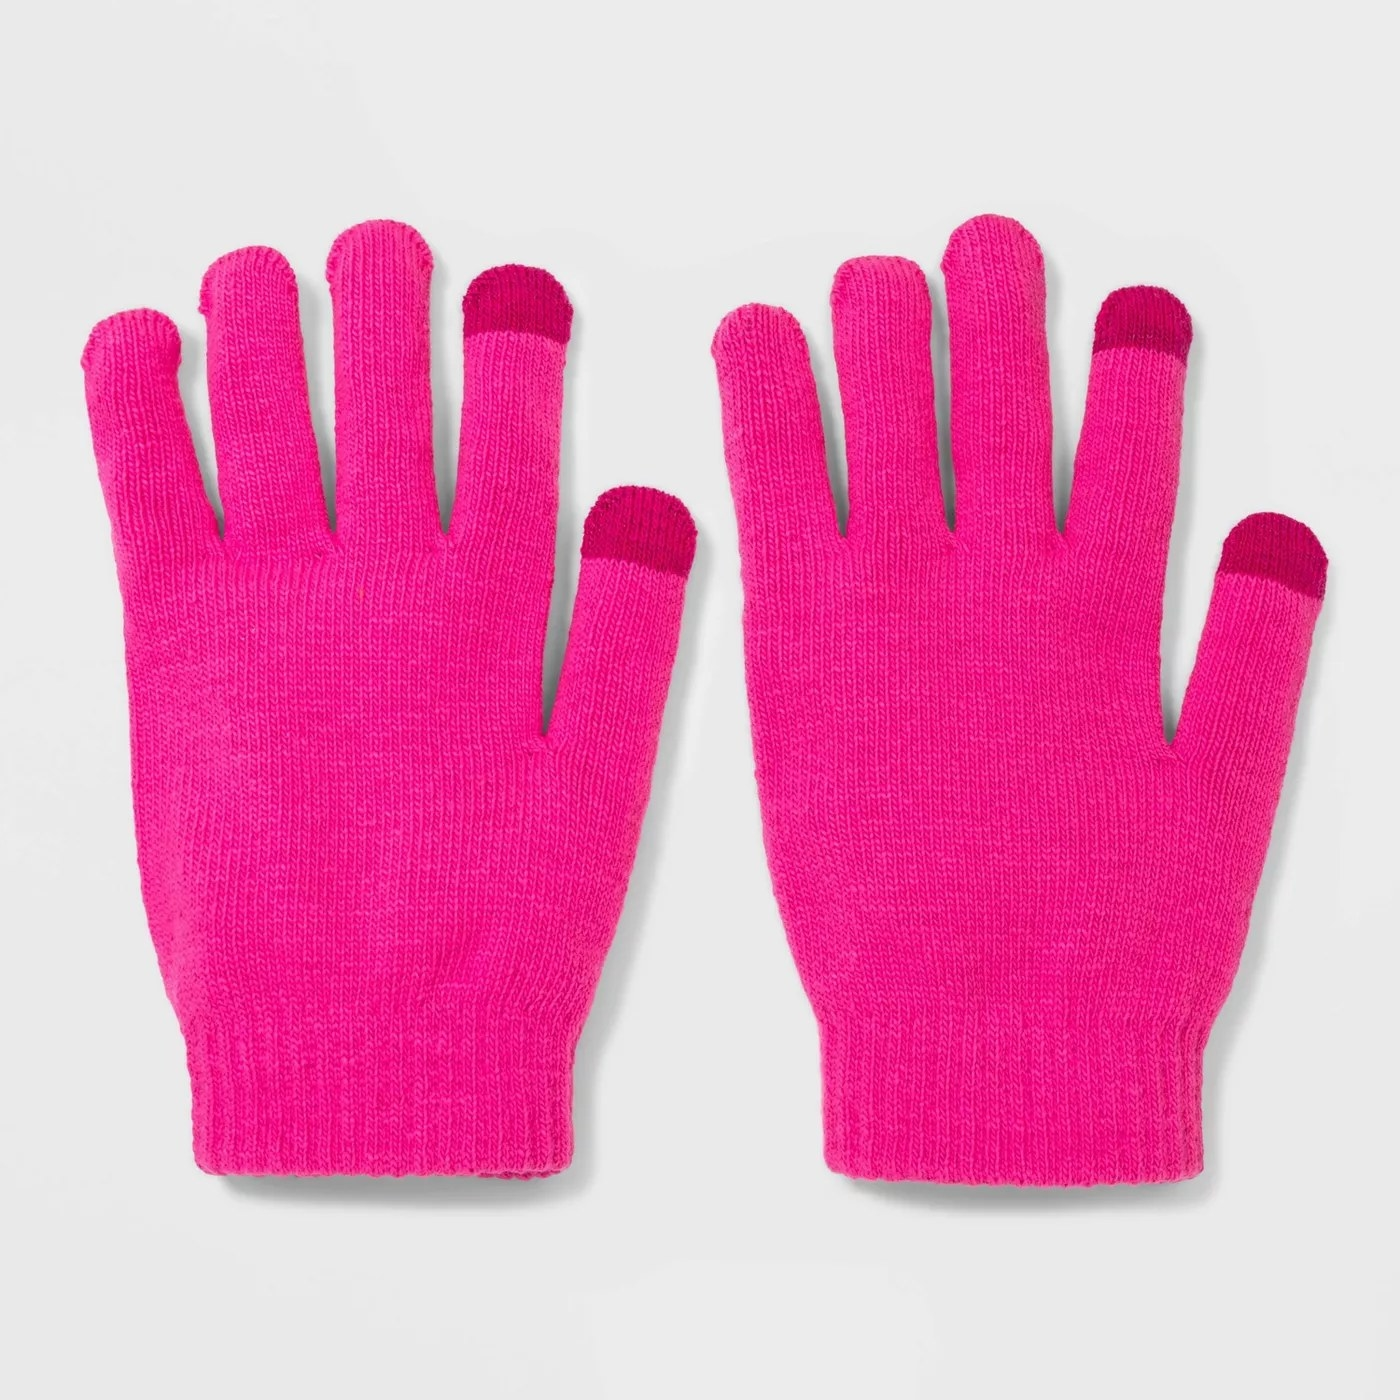 Hot pink gloves with dark pink colored finger tips